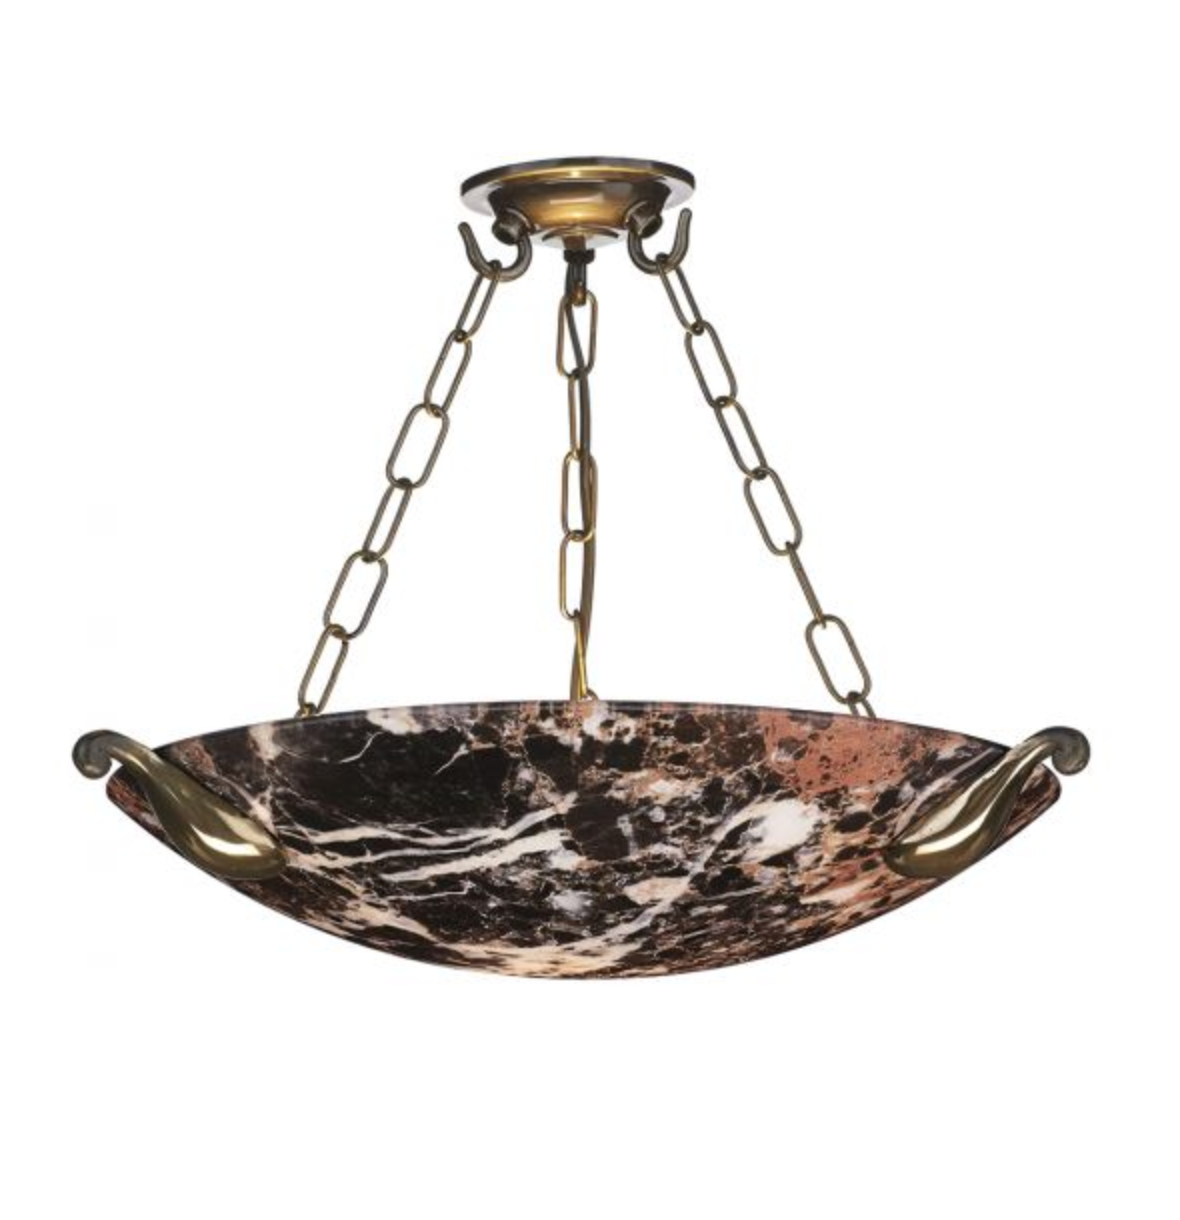 Mayfair Dark Marbled Glass Ceiling Light - ID 10413 - DISCONTINUED